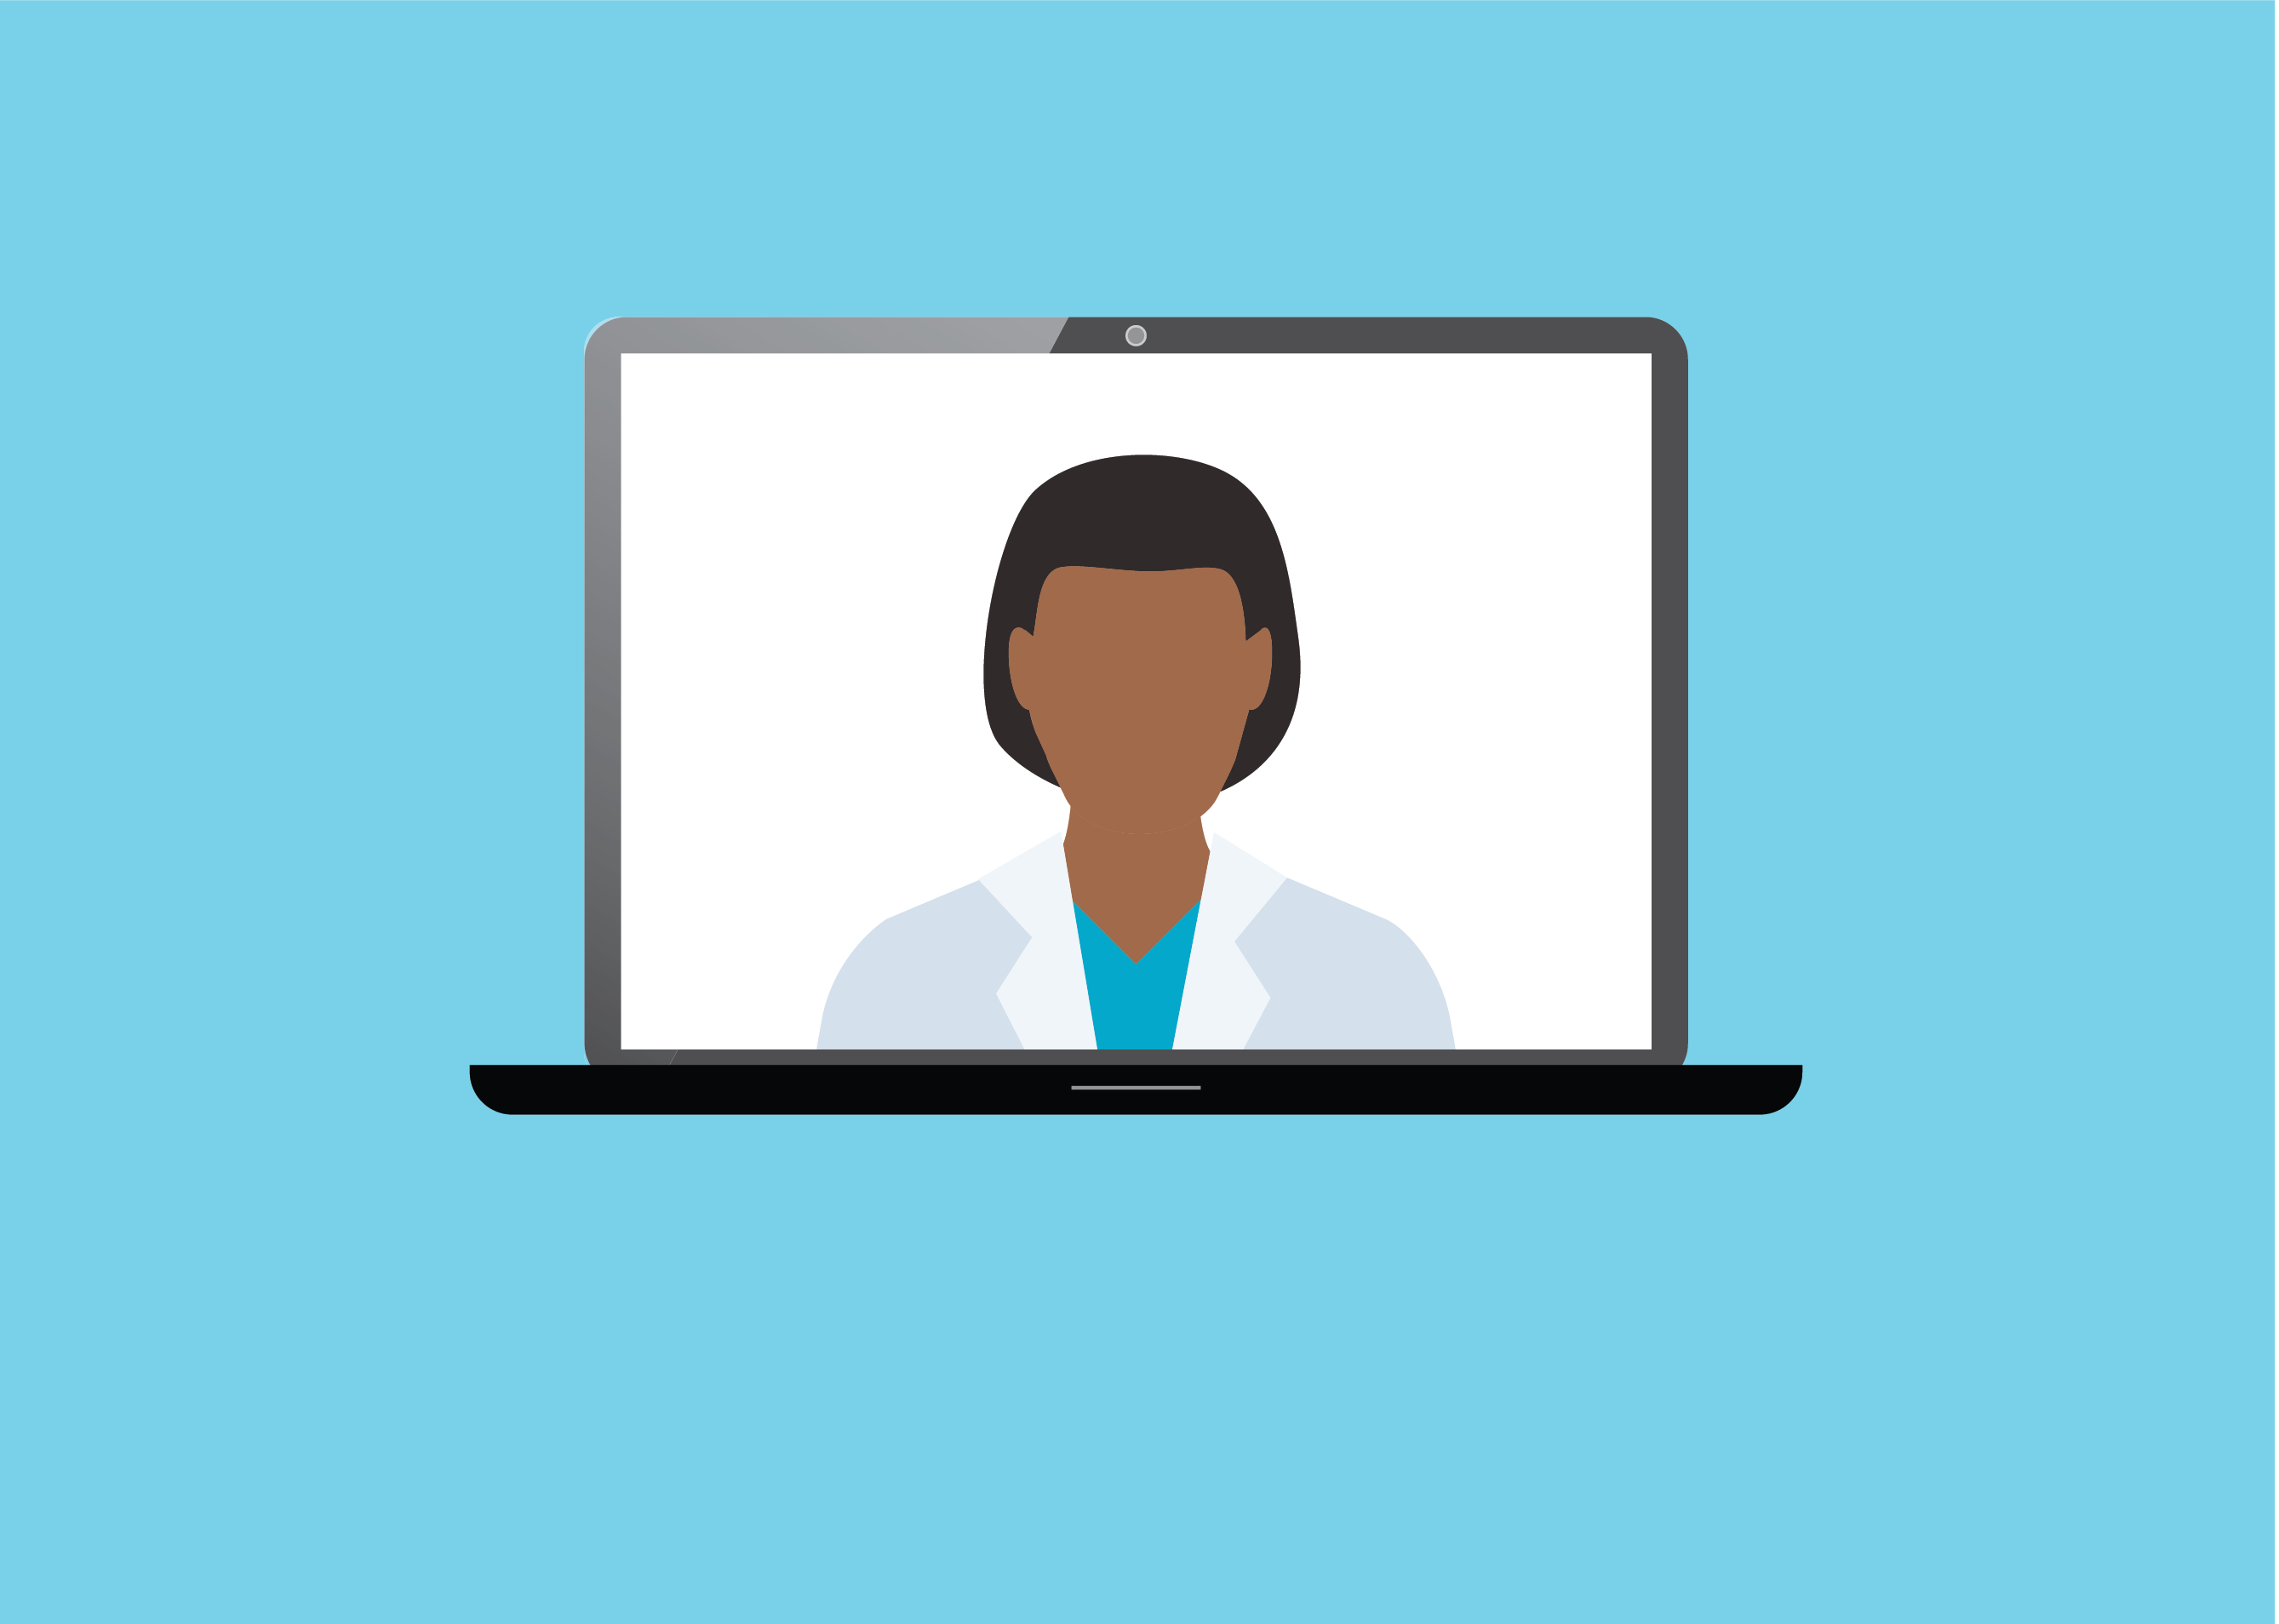 Doctor on computer conducting video visit